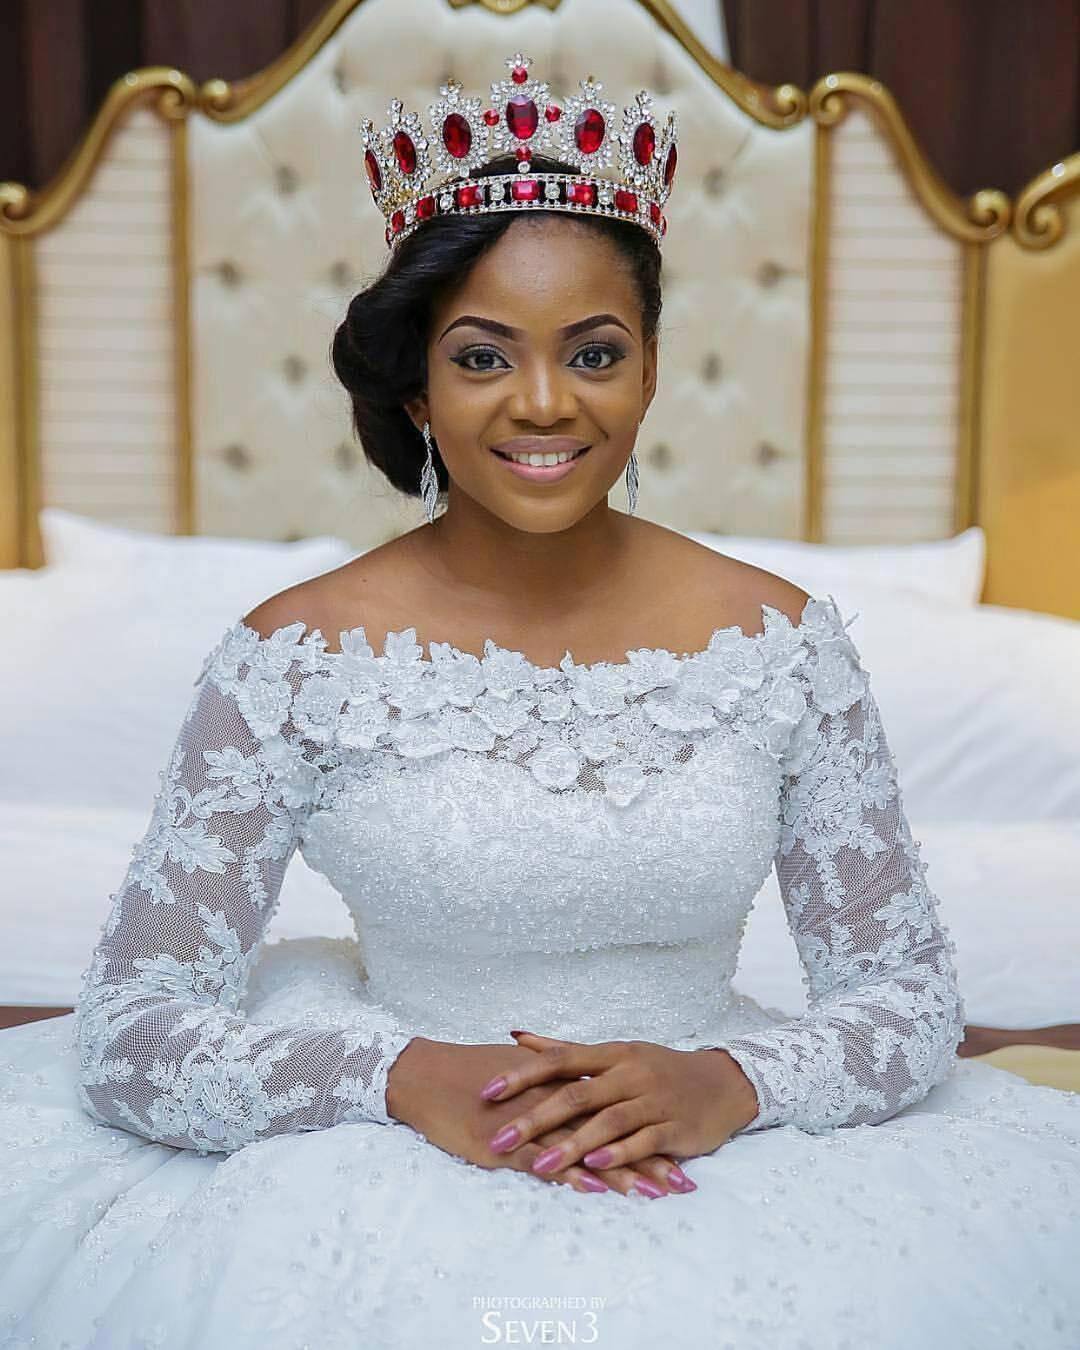 787 Mentions J Aime 5 Commentaires Nigerian Weddings Nigerianweddings Sur Instagram Nigerian Wedding Dress Plus Wedding Dresses Beautiful Wedding Dresses